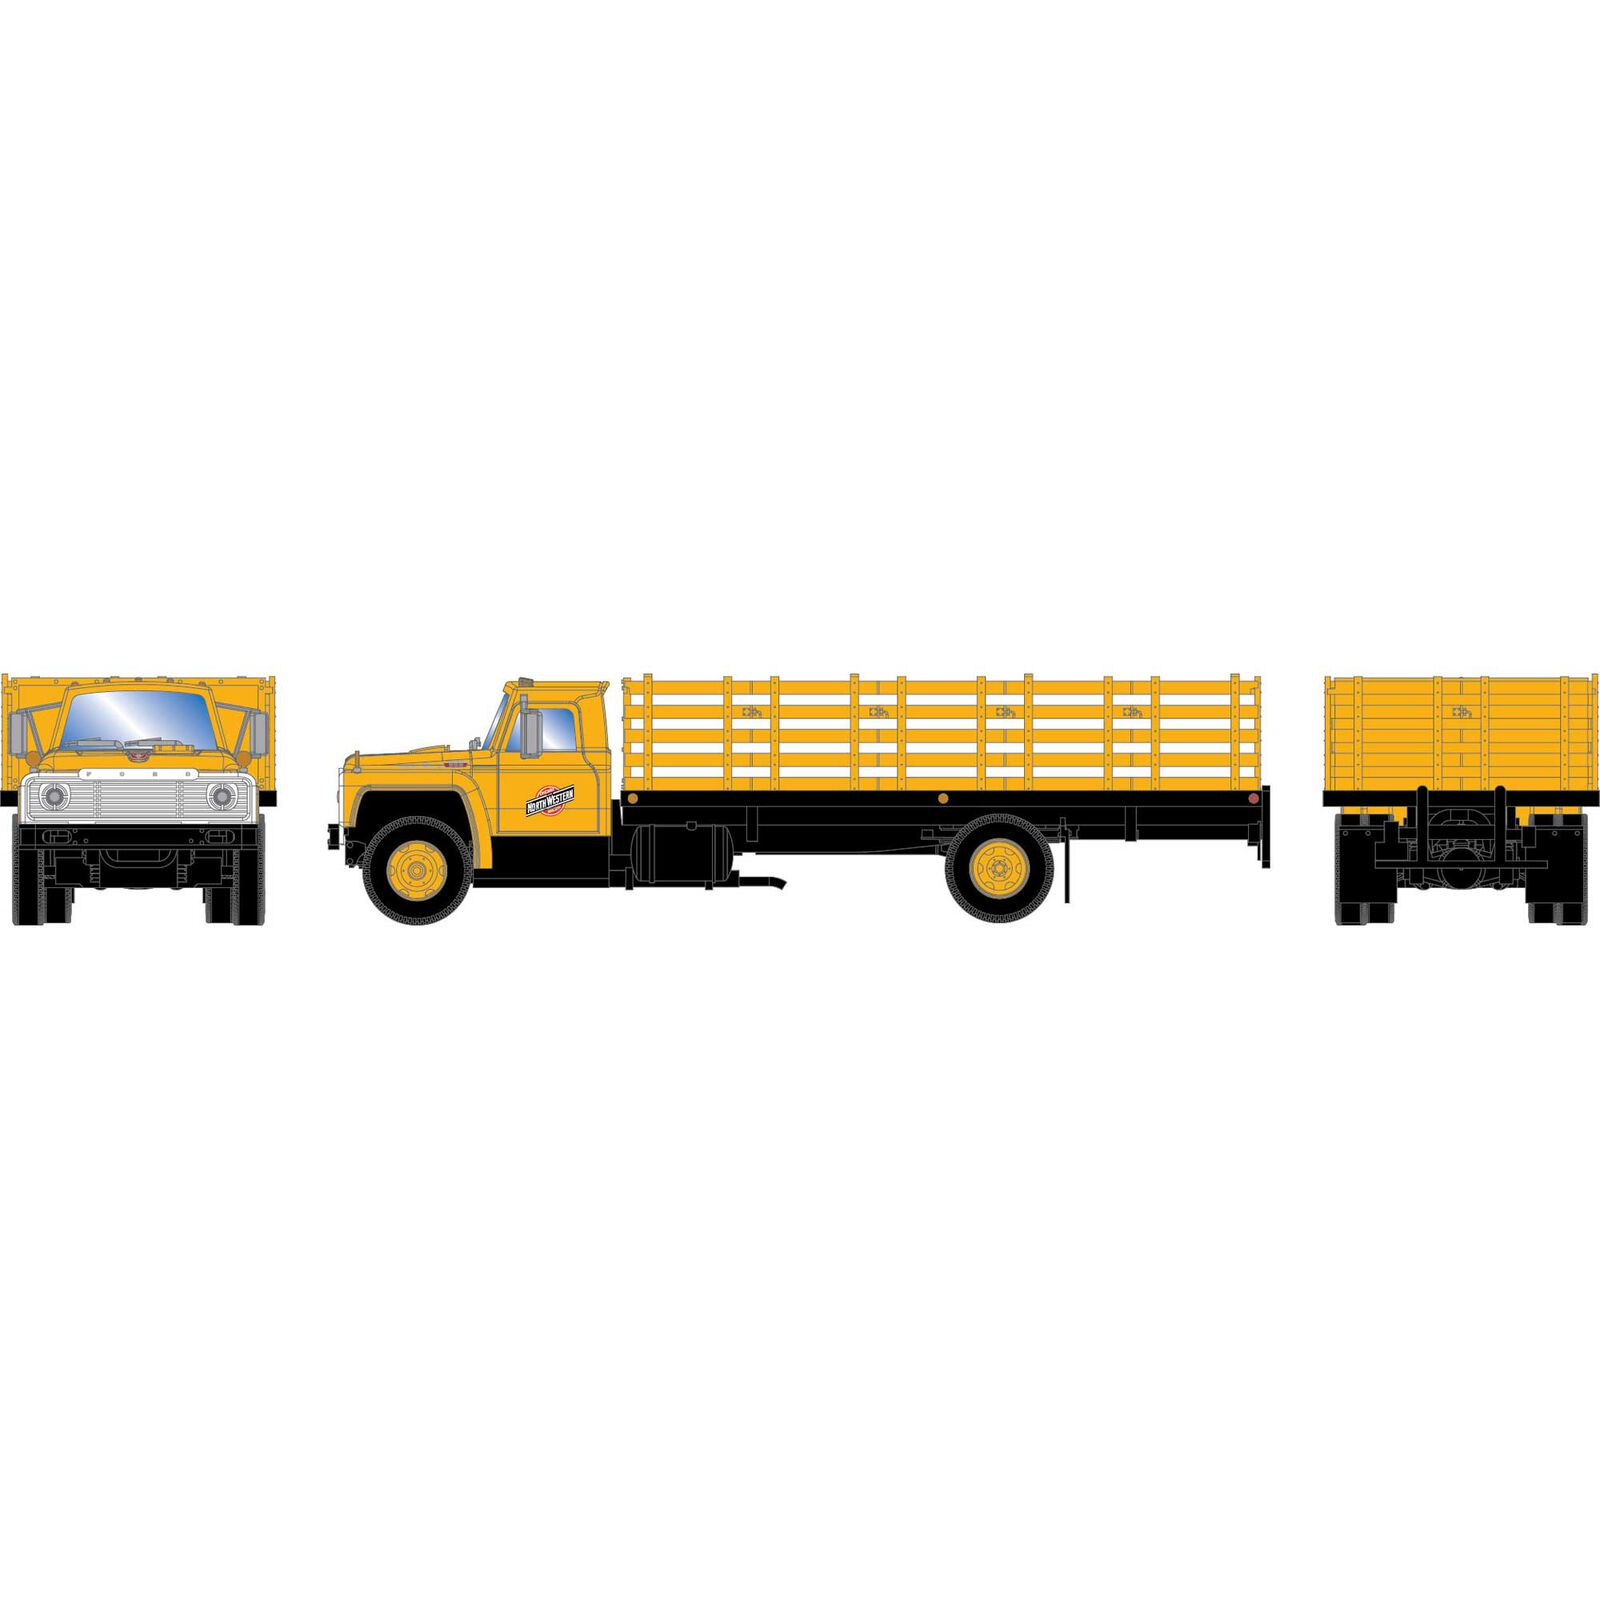 HO RTR Ford F-850 Stakebed Truck, C&NW